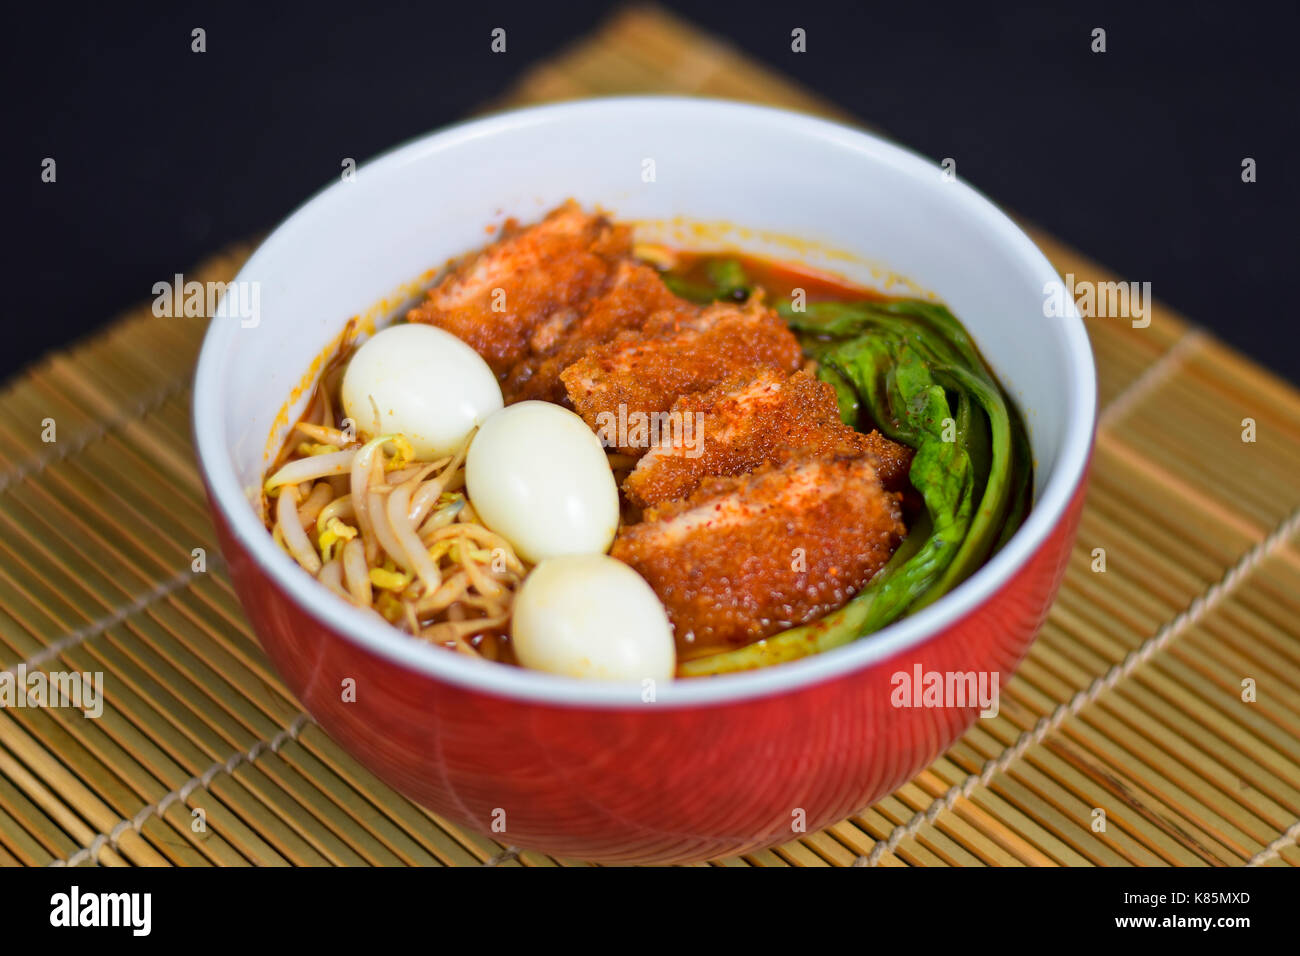 Ramen noodles with extra fried bacon - Stock Image